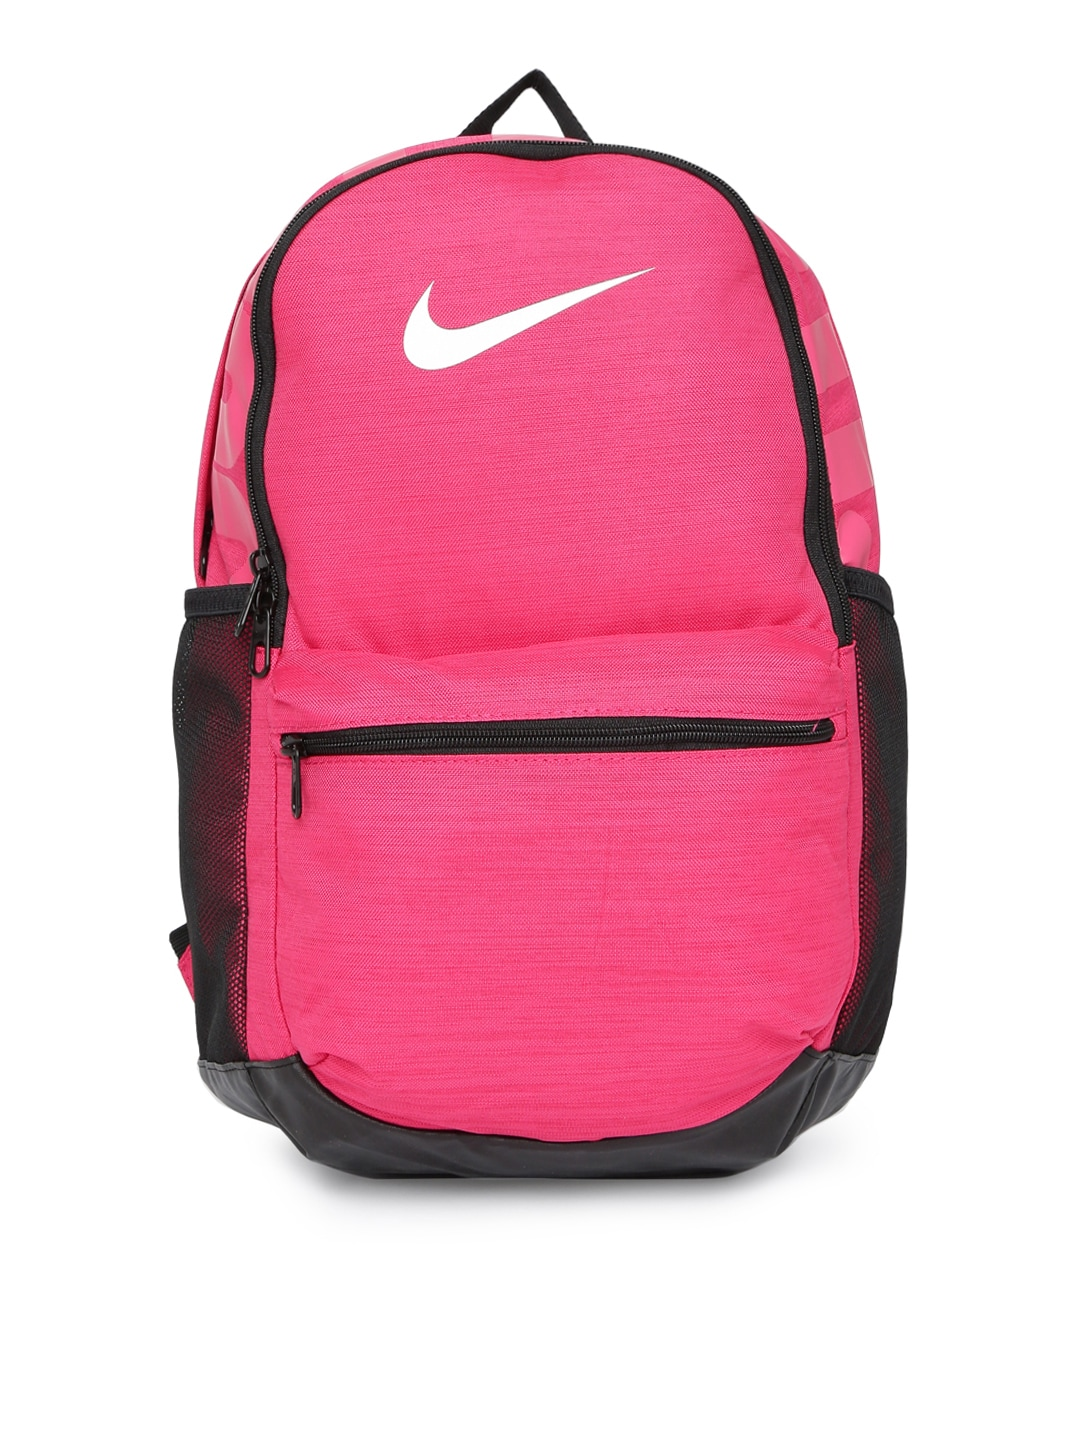 5a67b9bf8dba Nike Backpacks - Buy Original Nike Backpacks Online from Myntra